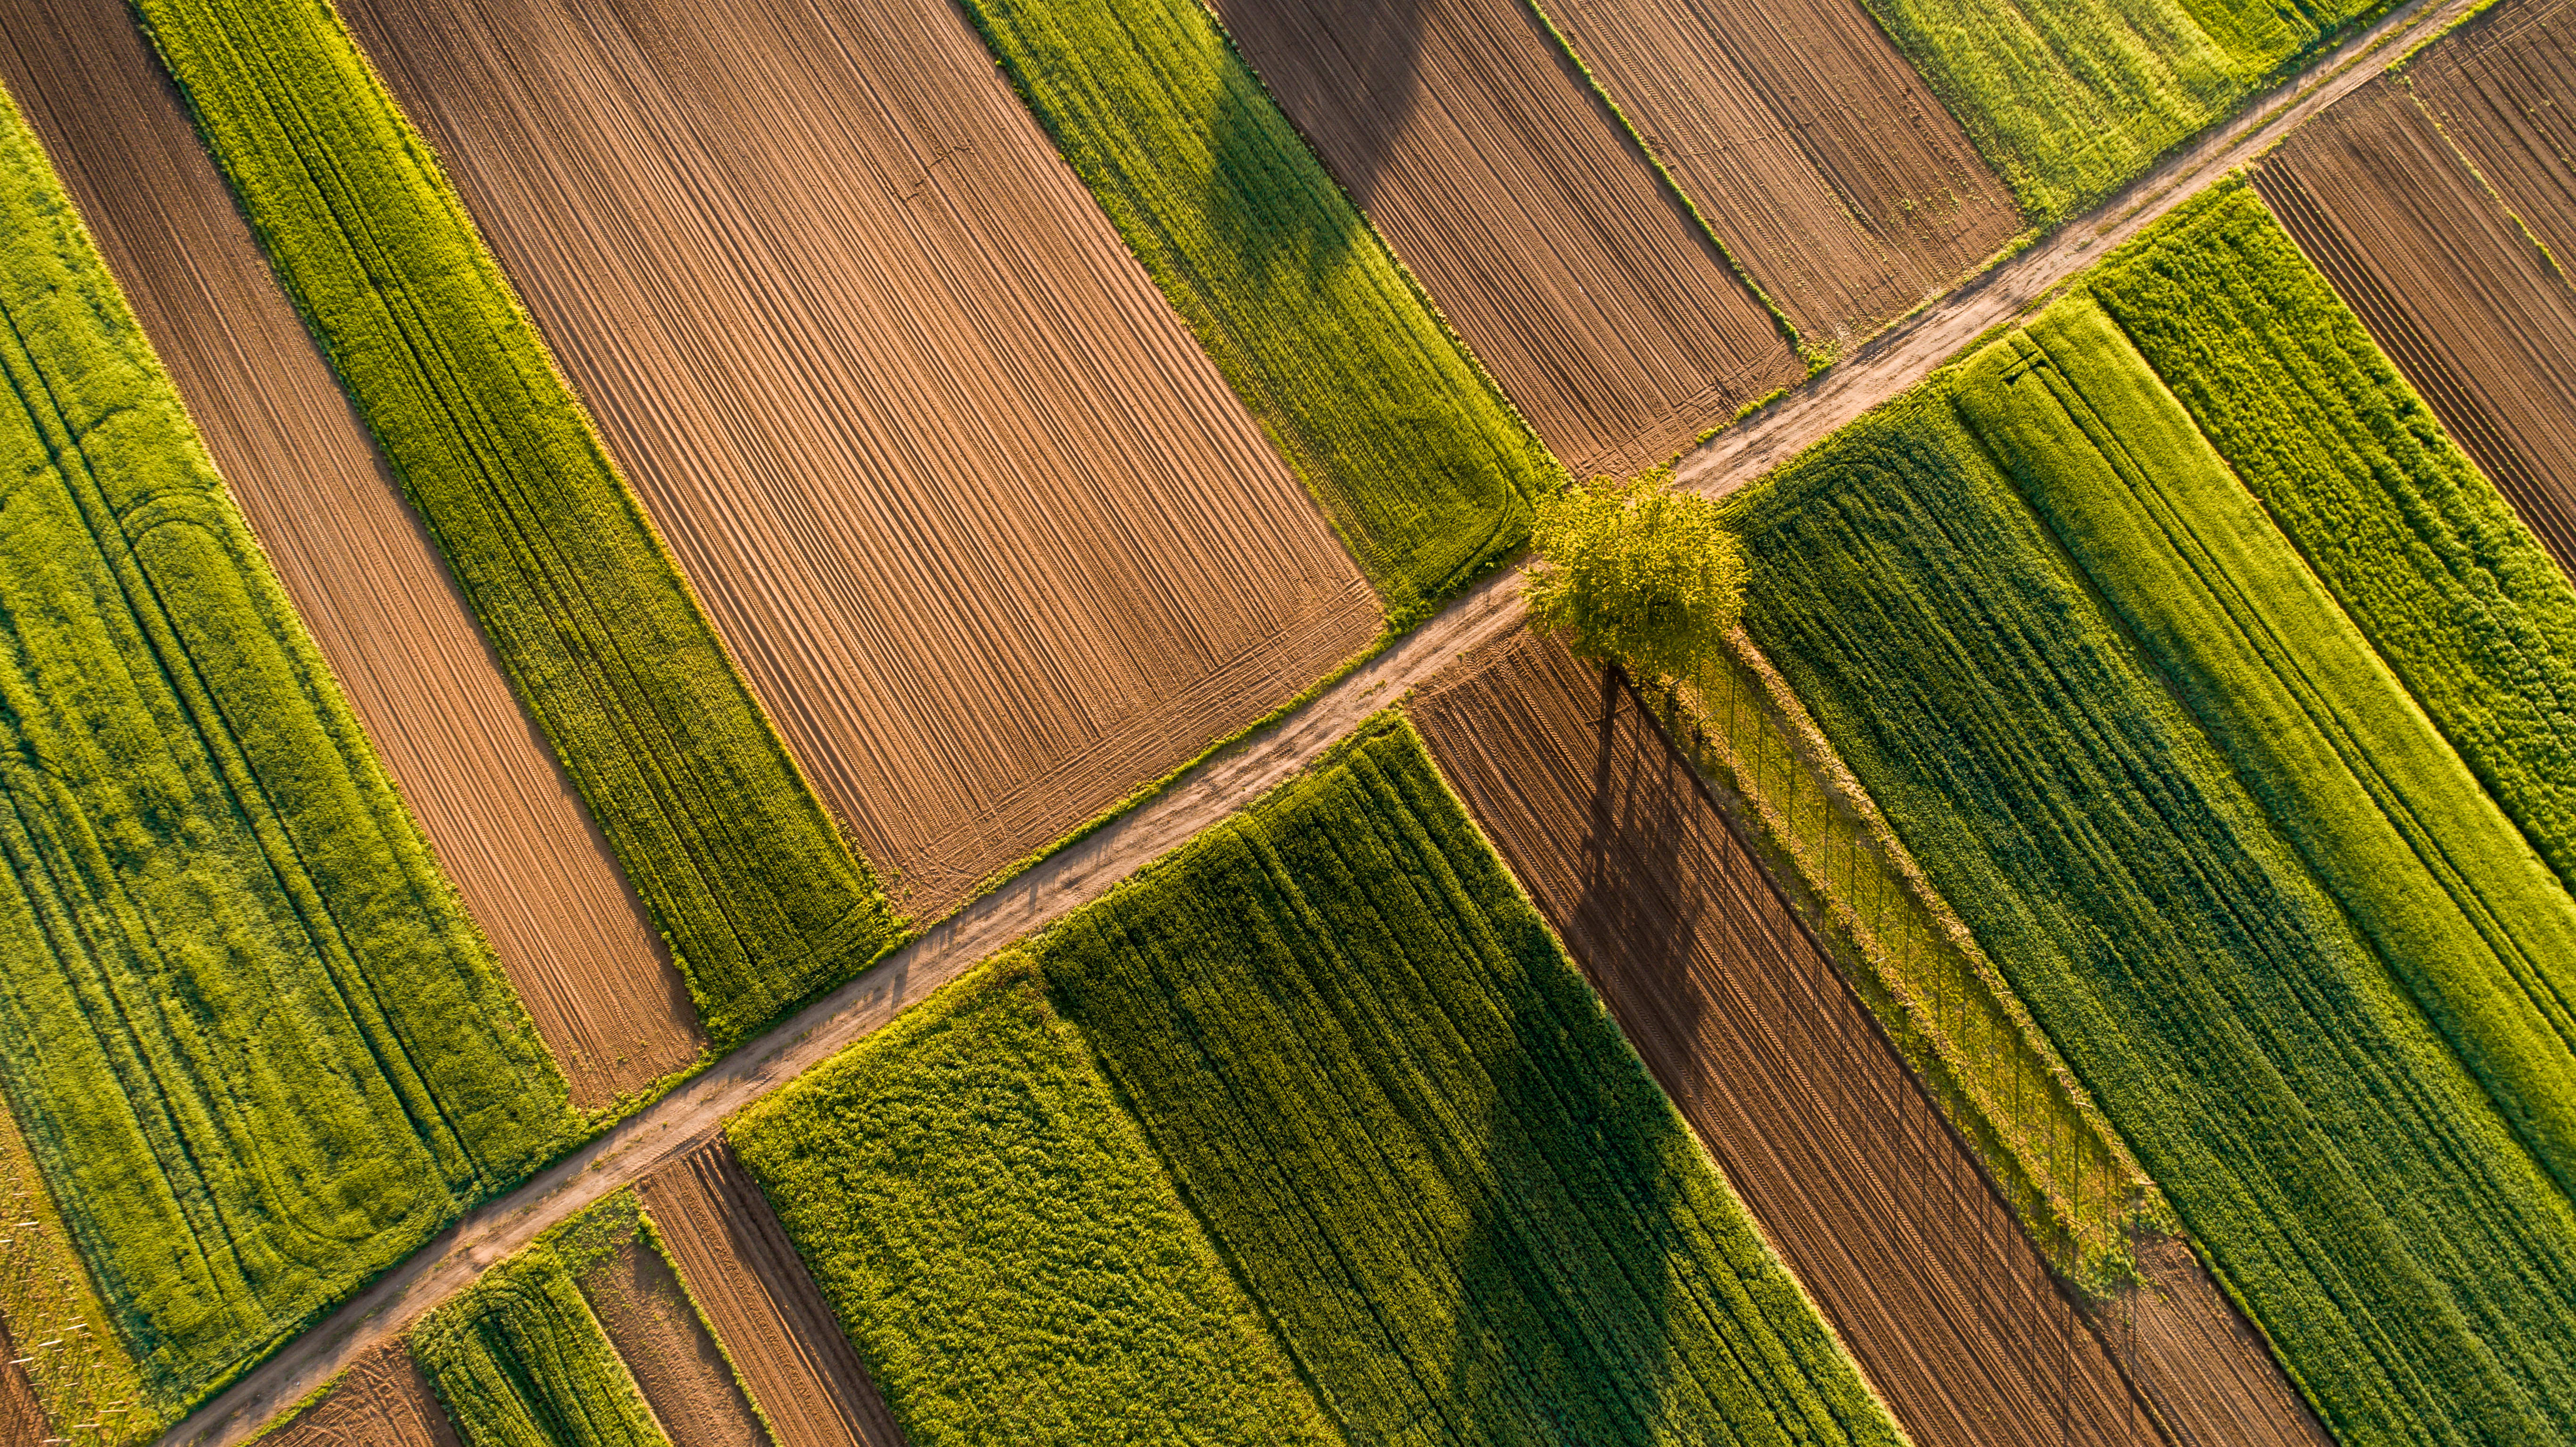 A farm field. Agriculture is one of the largest sources of U.S. methane emissions